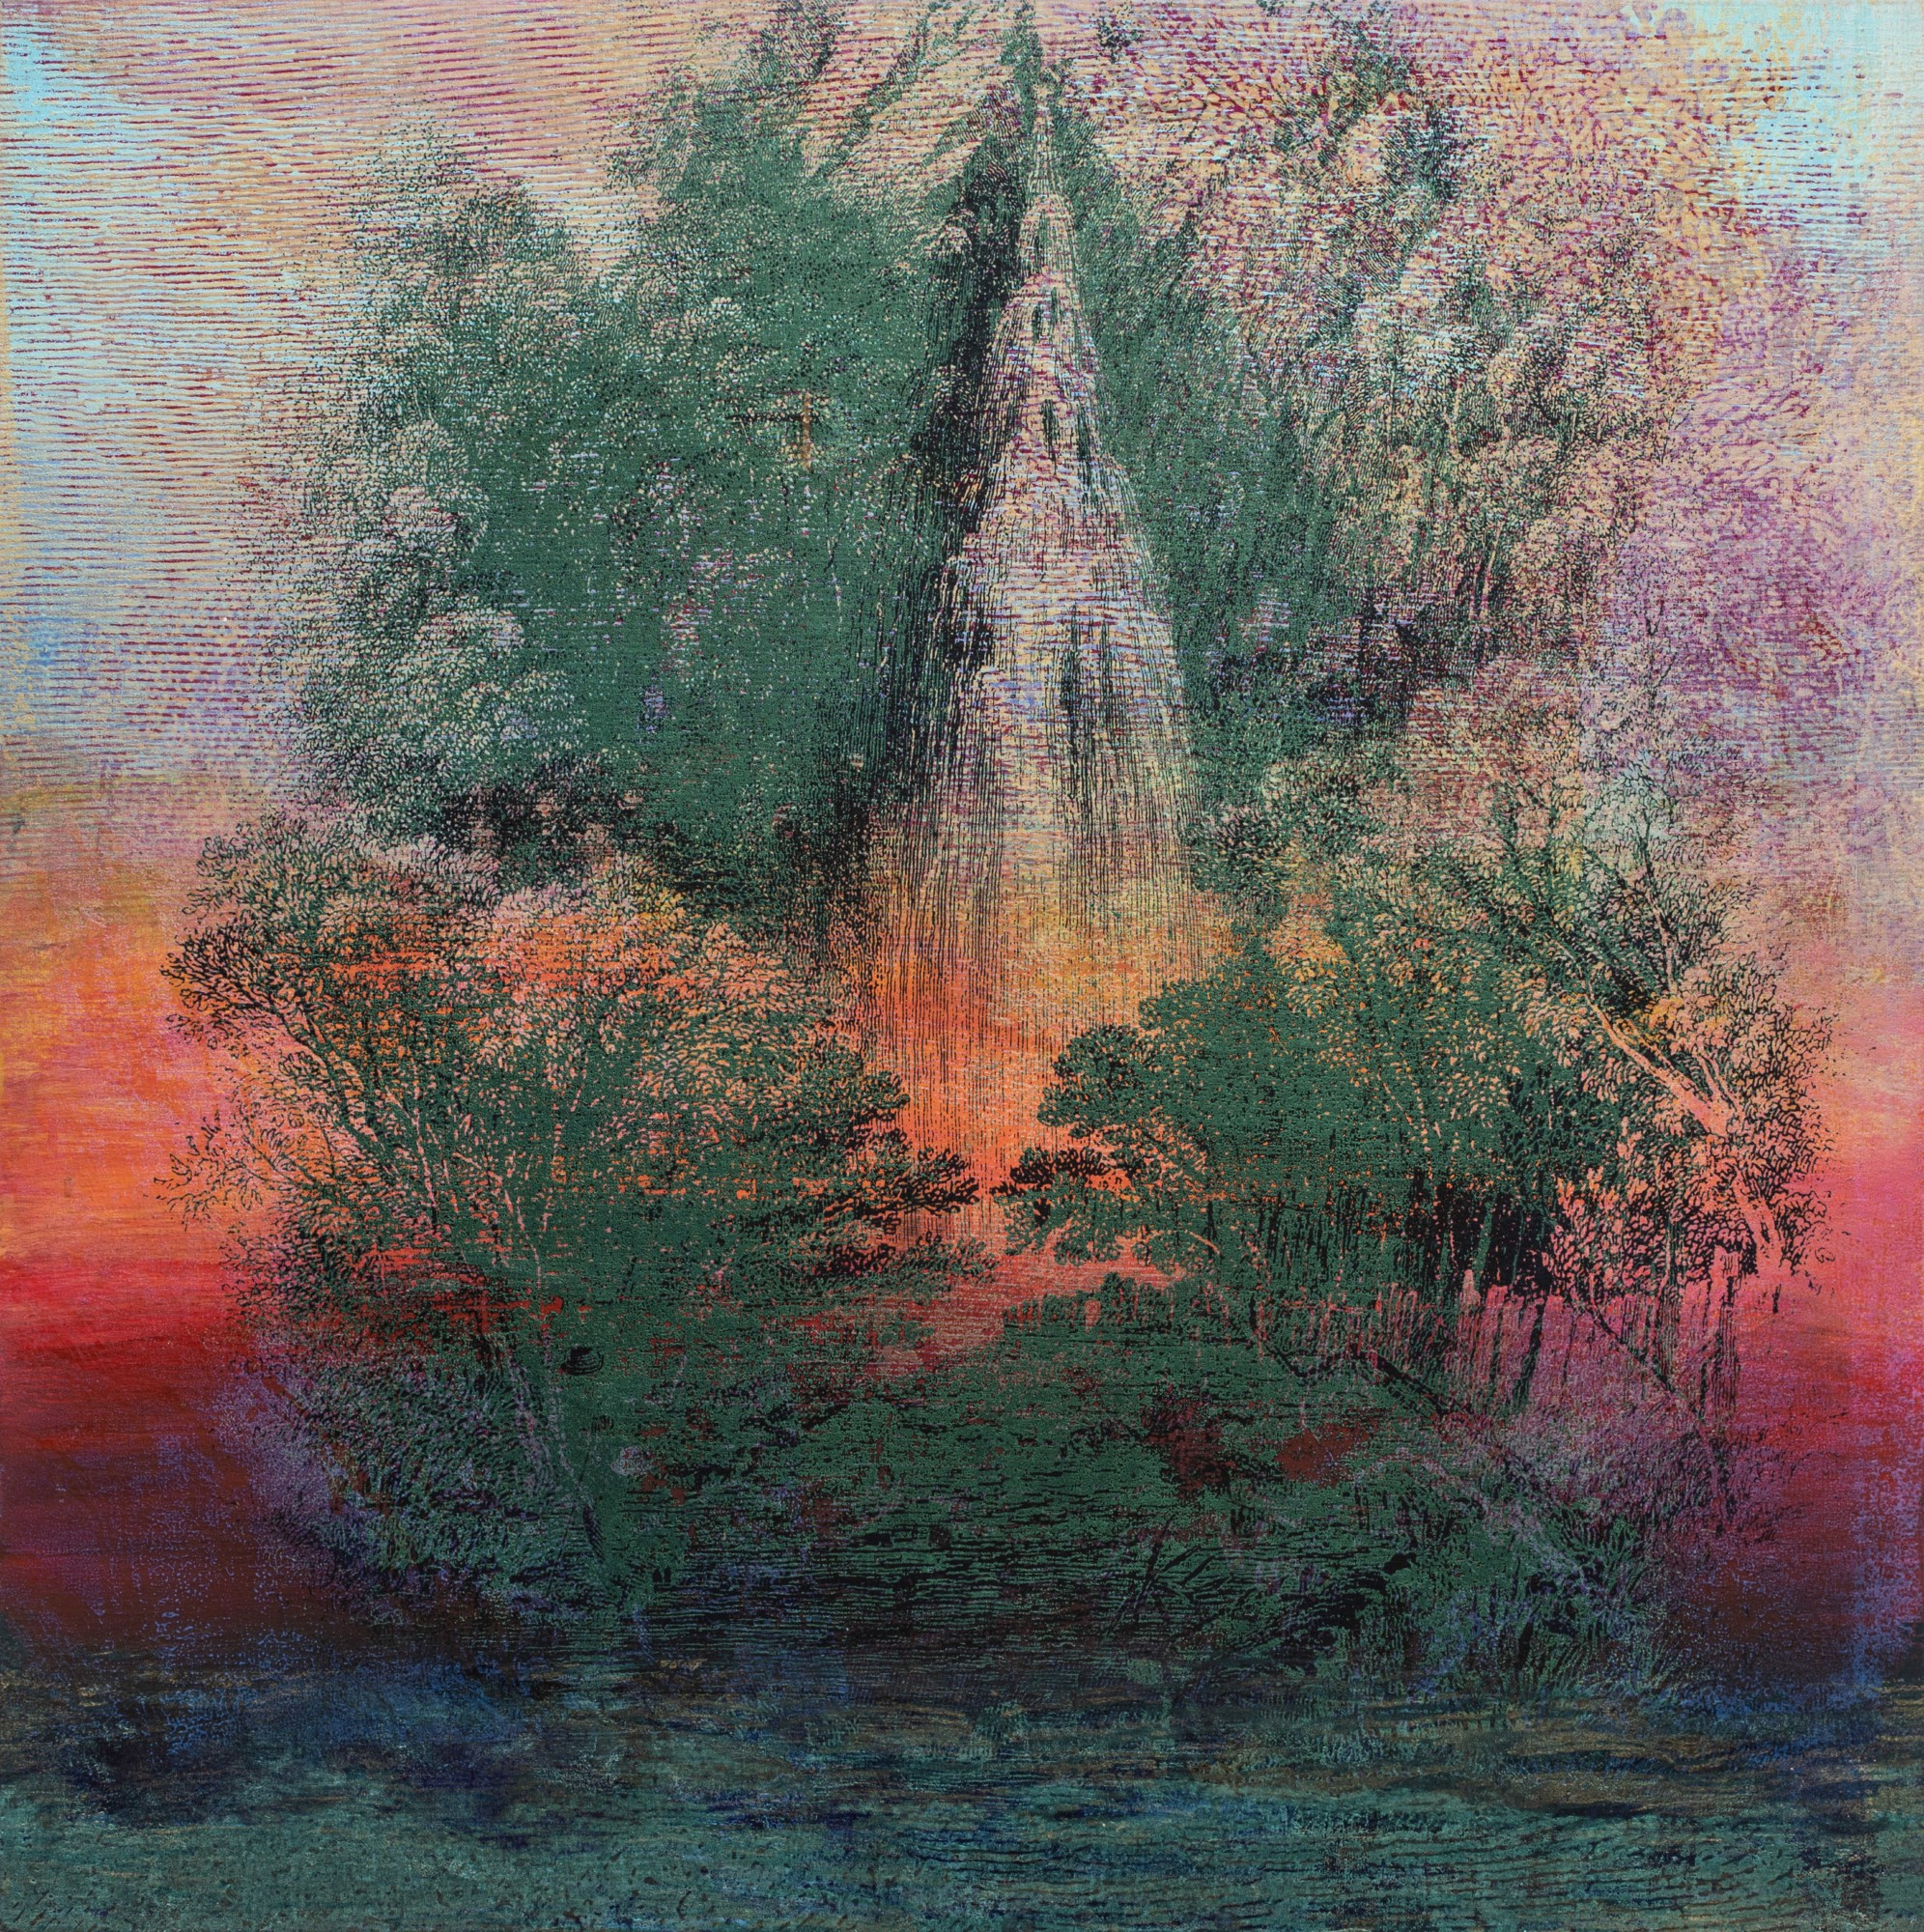 Rita Robillard - Falls I - 20 x 20, screenprint and painting on panel